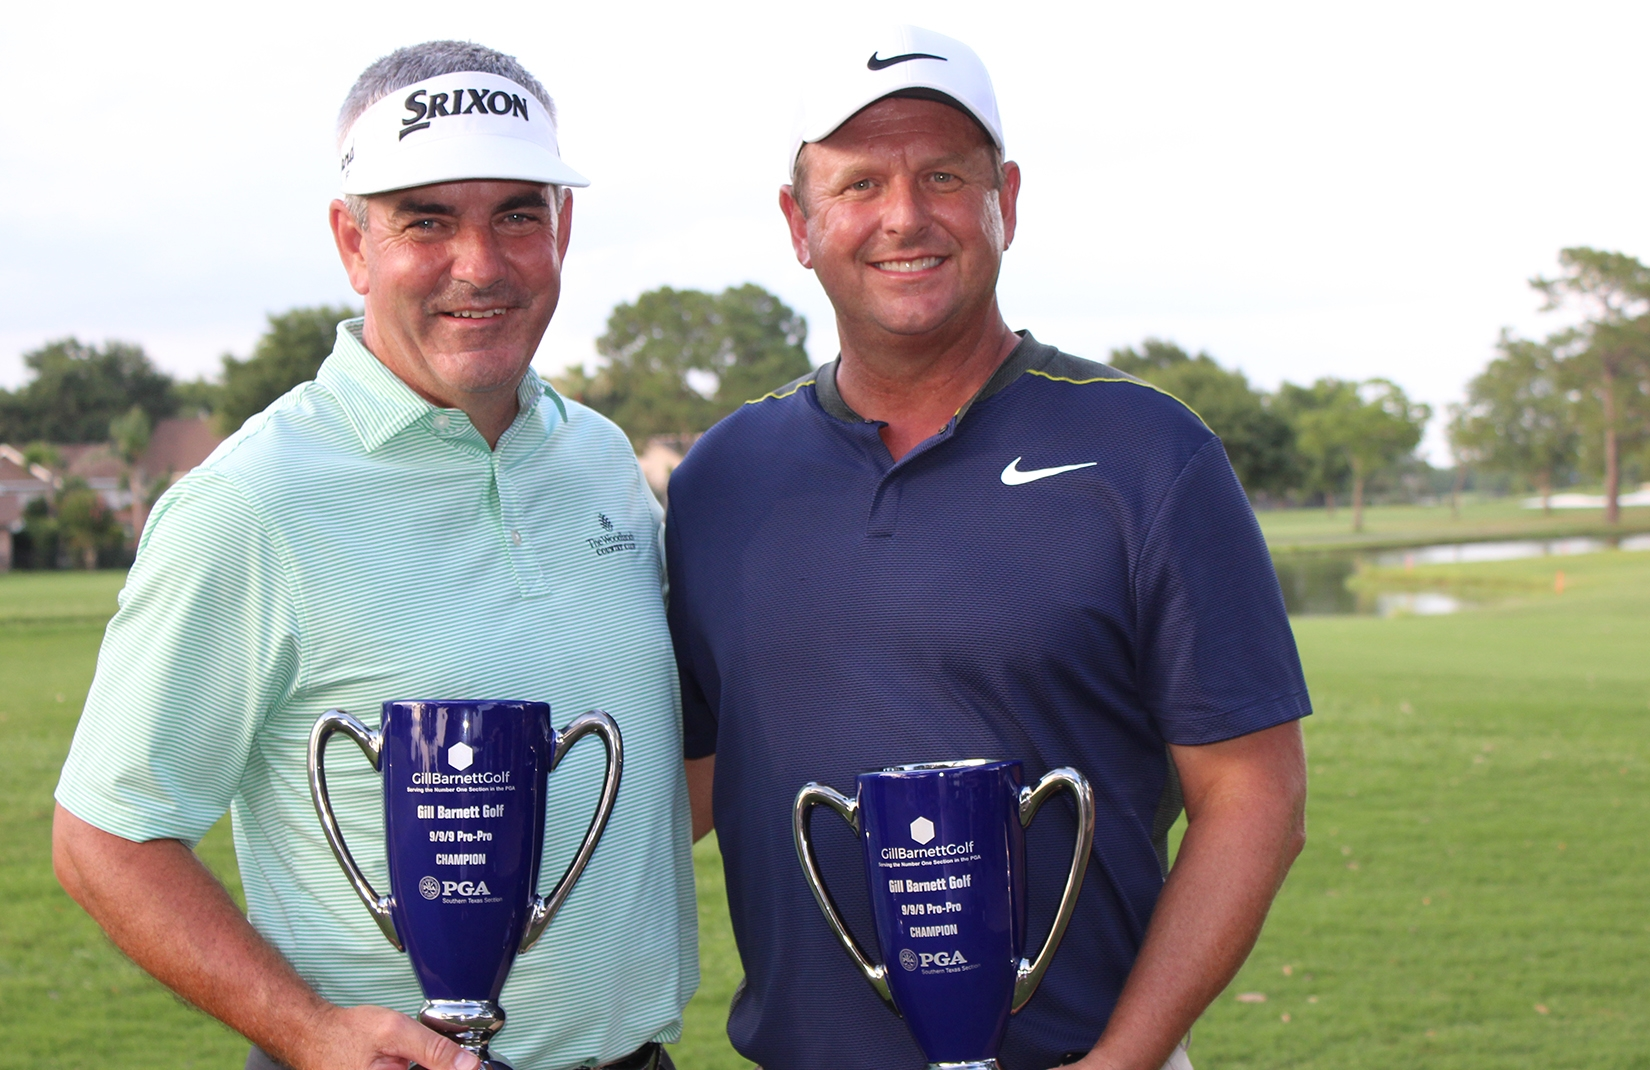 Earnest & Fuston Win Gill Barnett Golf 9-9-9 Pro-Pro